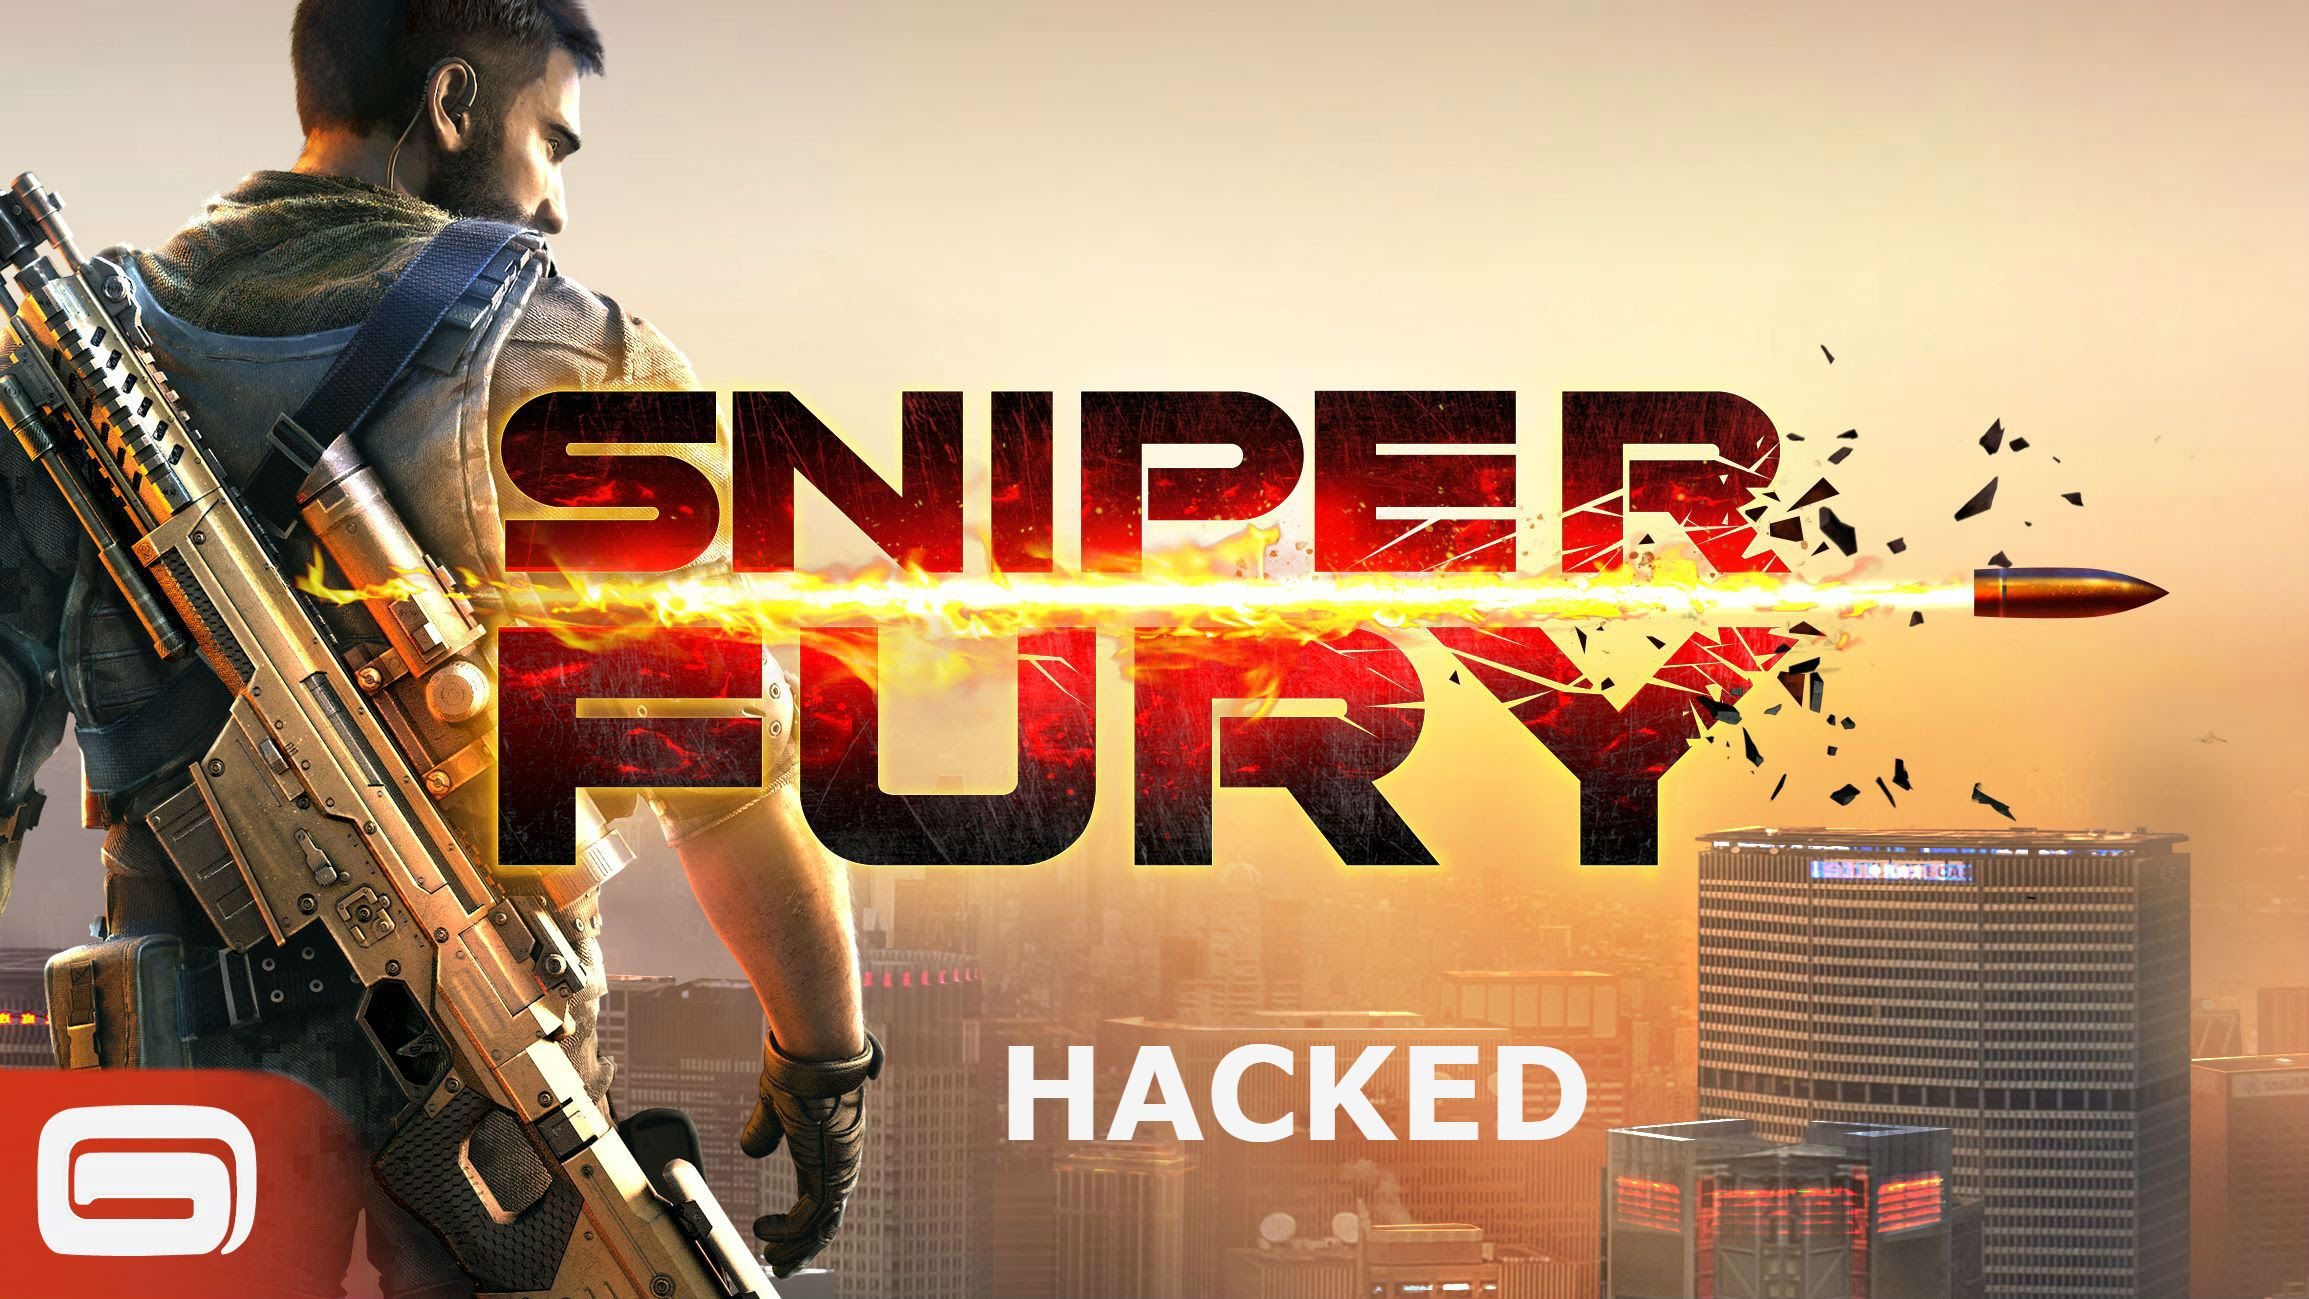 sniper fury hack windows to without surve